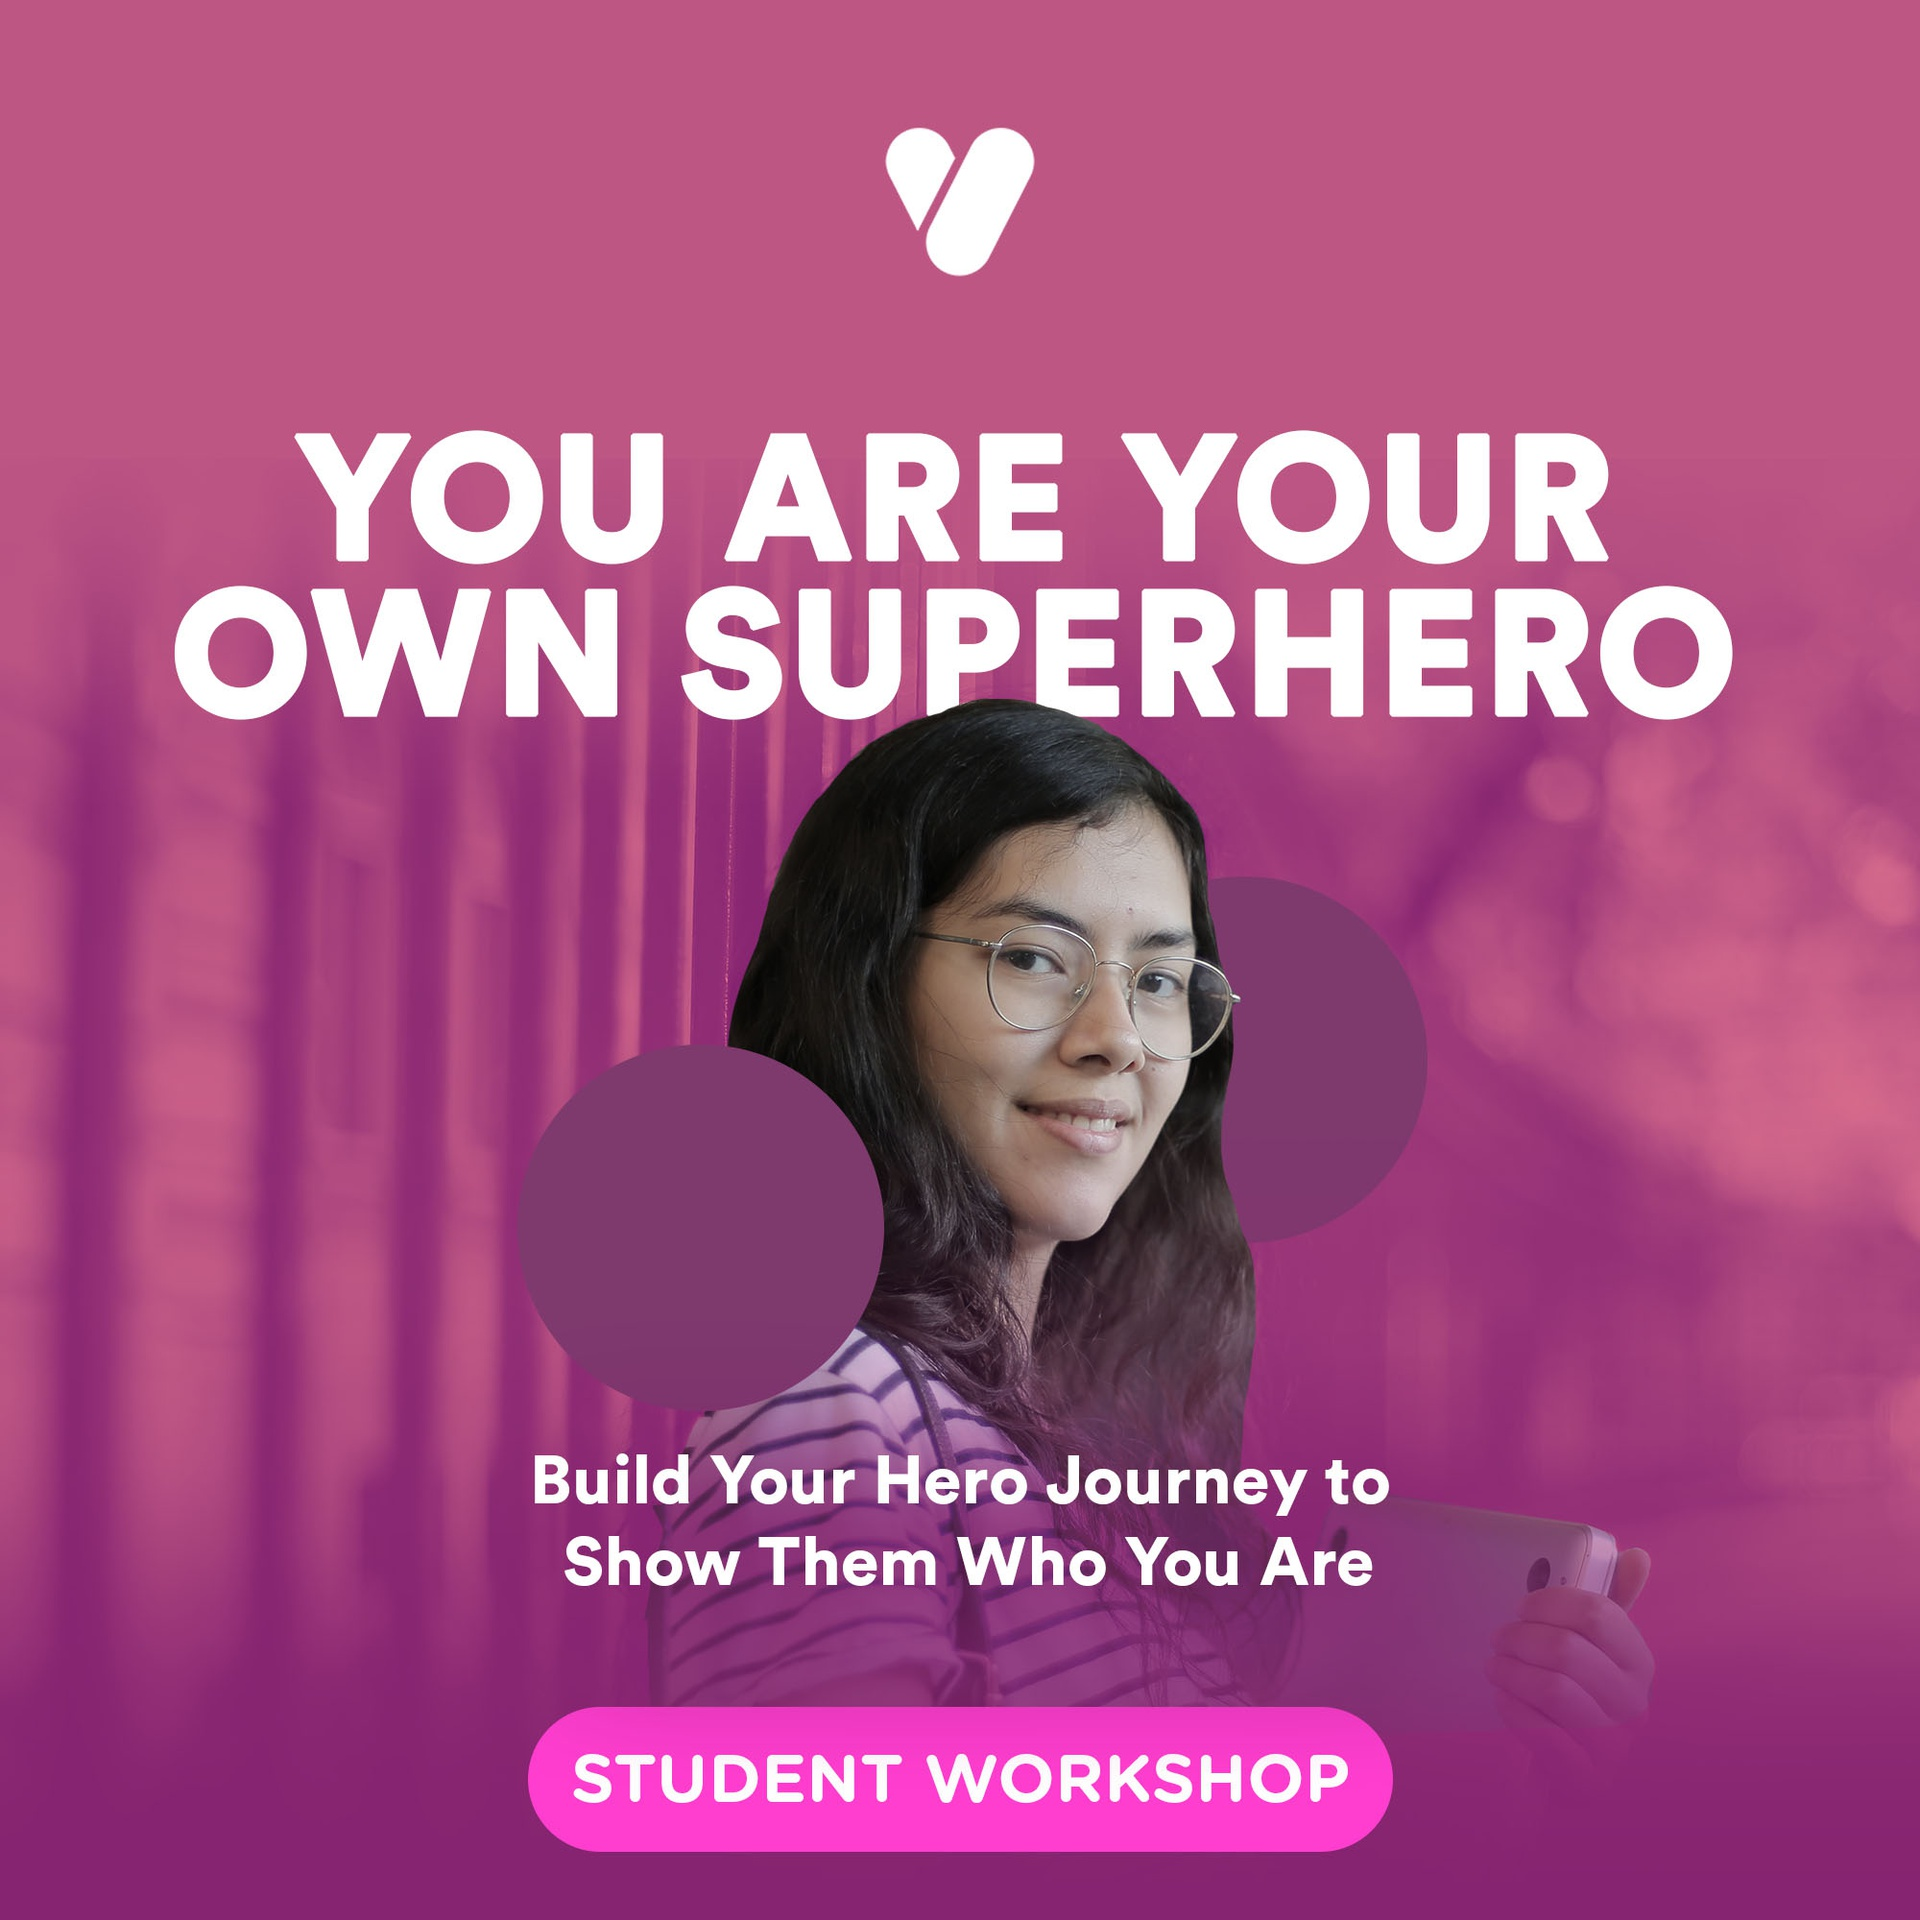 You are Your Own Superhero: Build Your Hero Journey to Show Them Who You Are